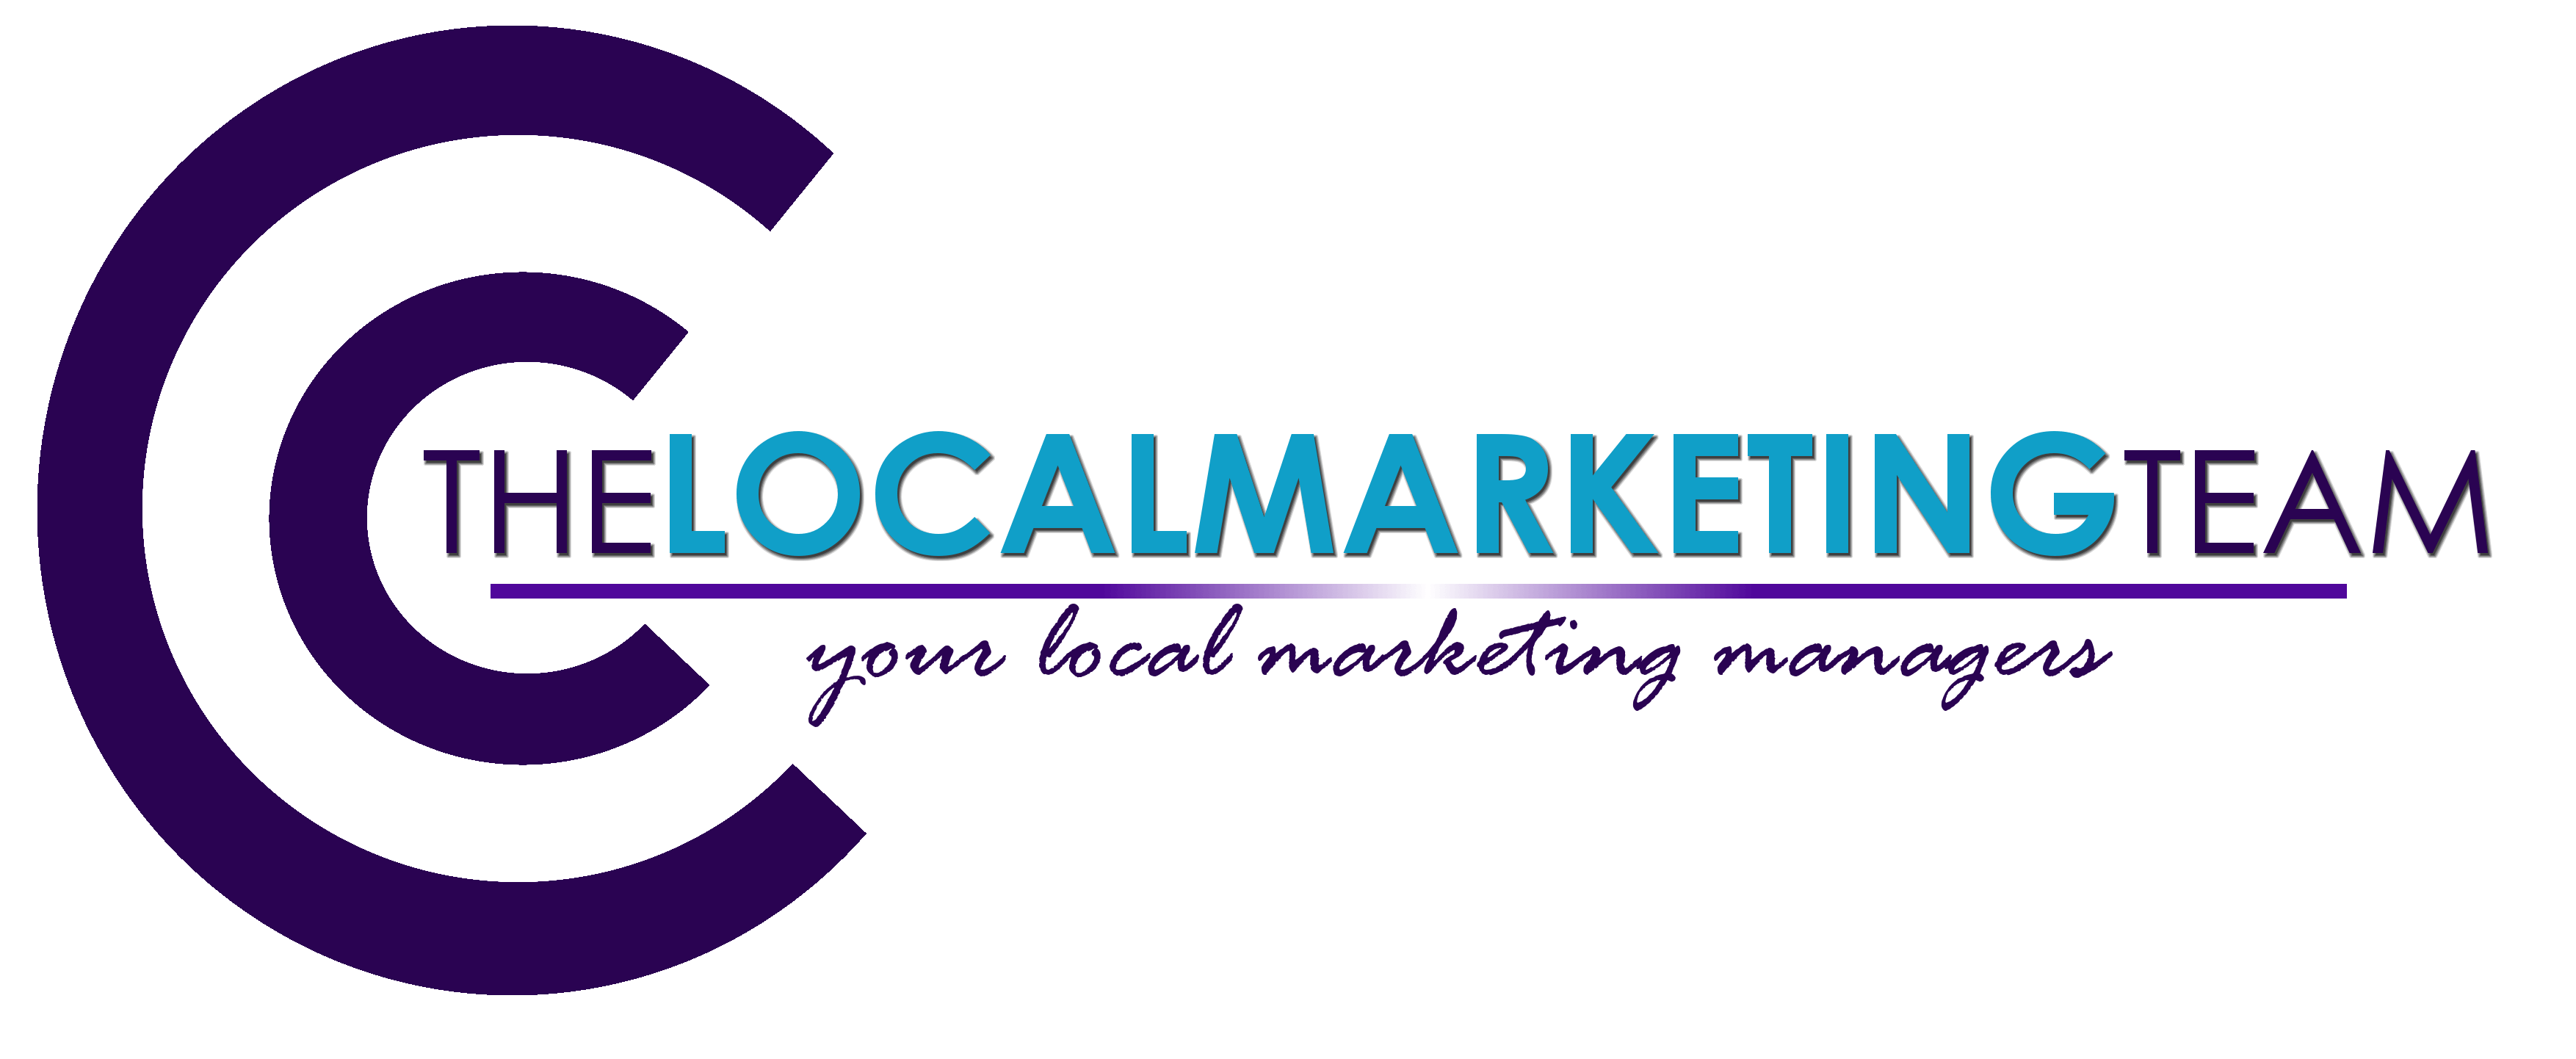 The Local Marketing Team Ltd